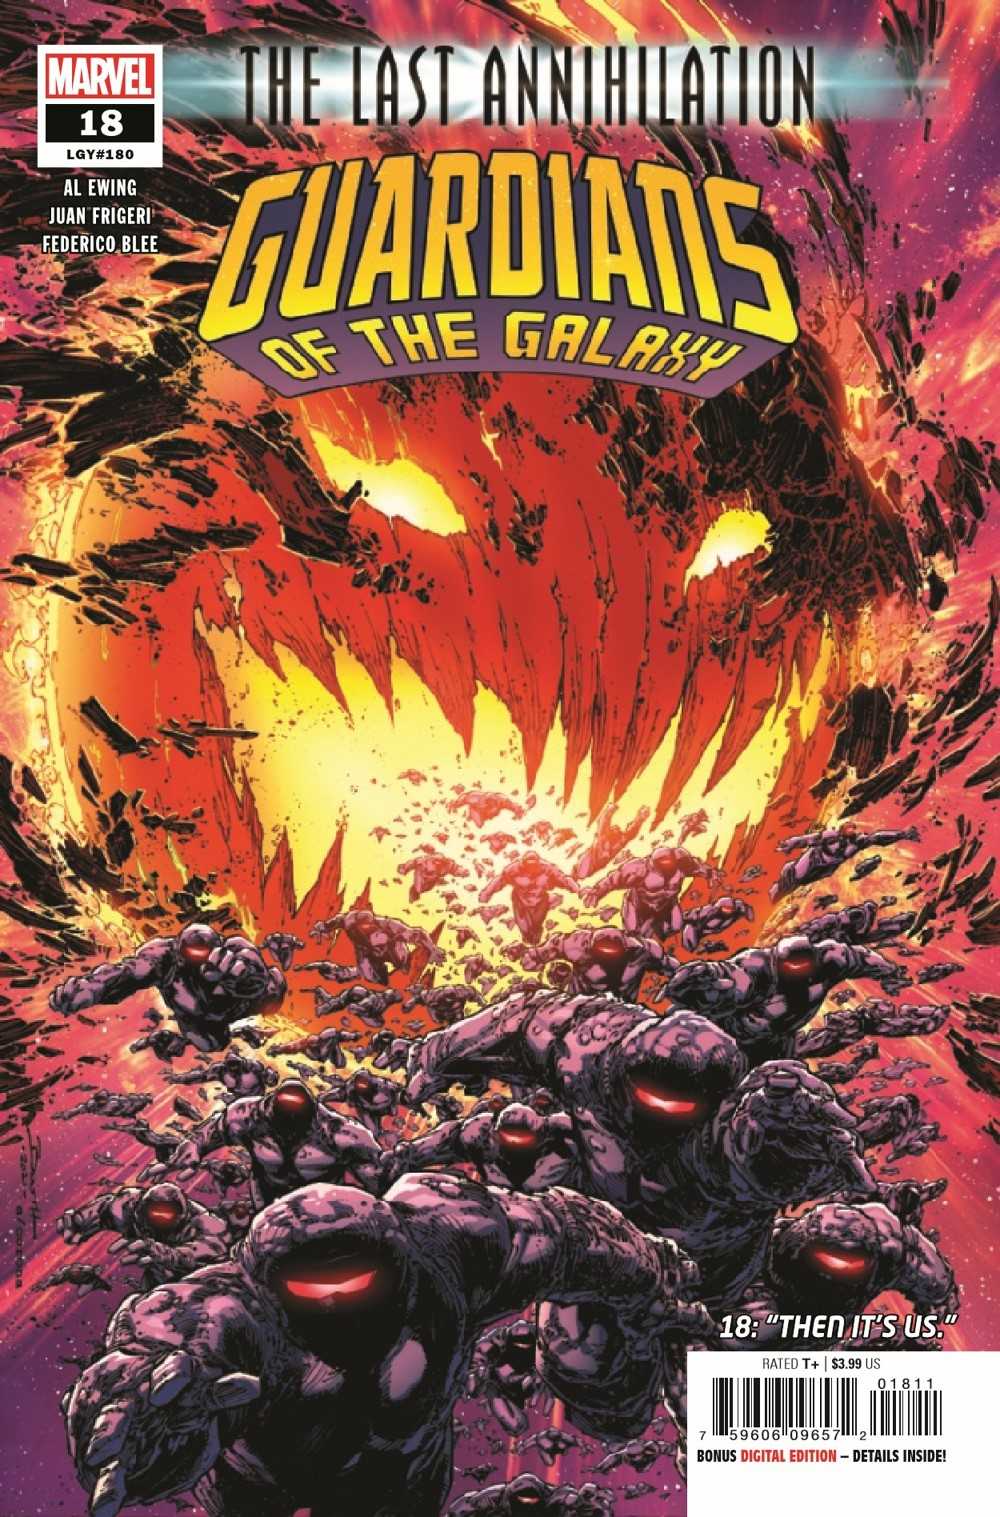 GARGAL2020018_Preview-1 ComicList Previews: GUARDIANS OF THE GALAXY #18